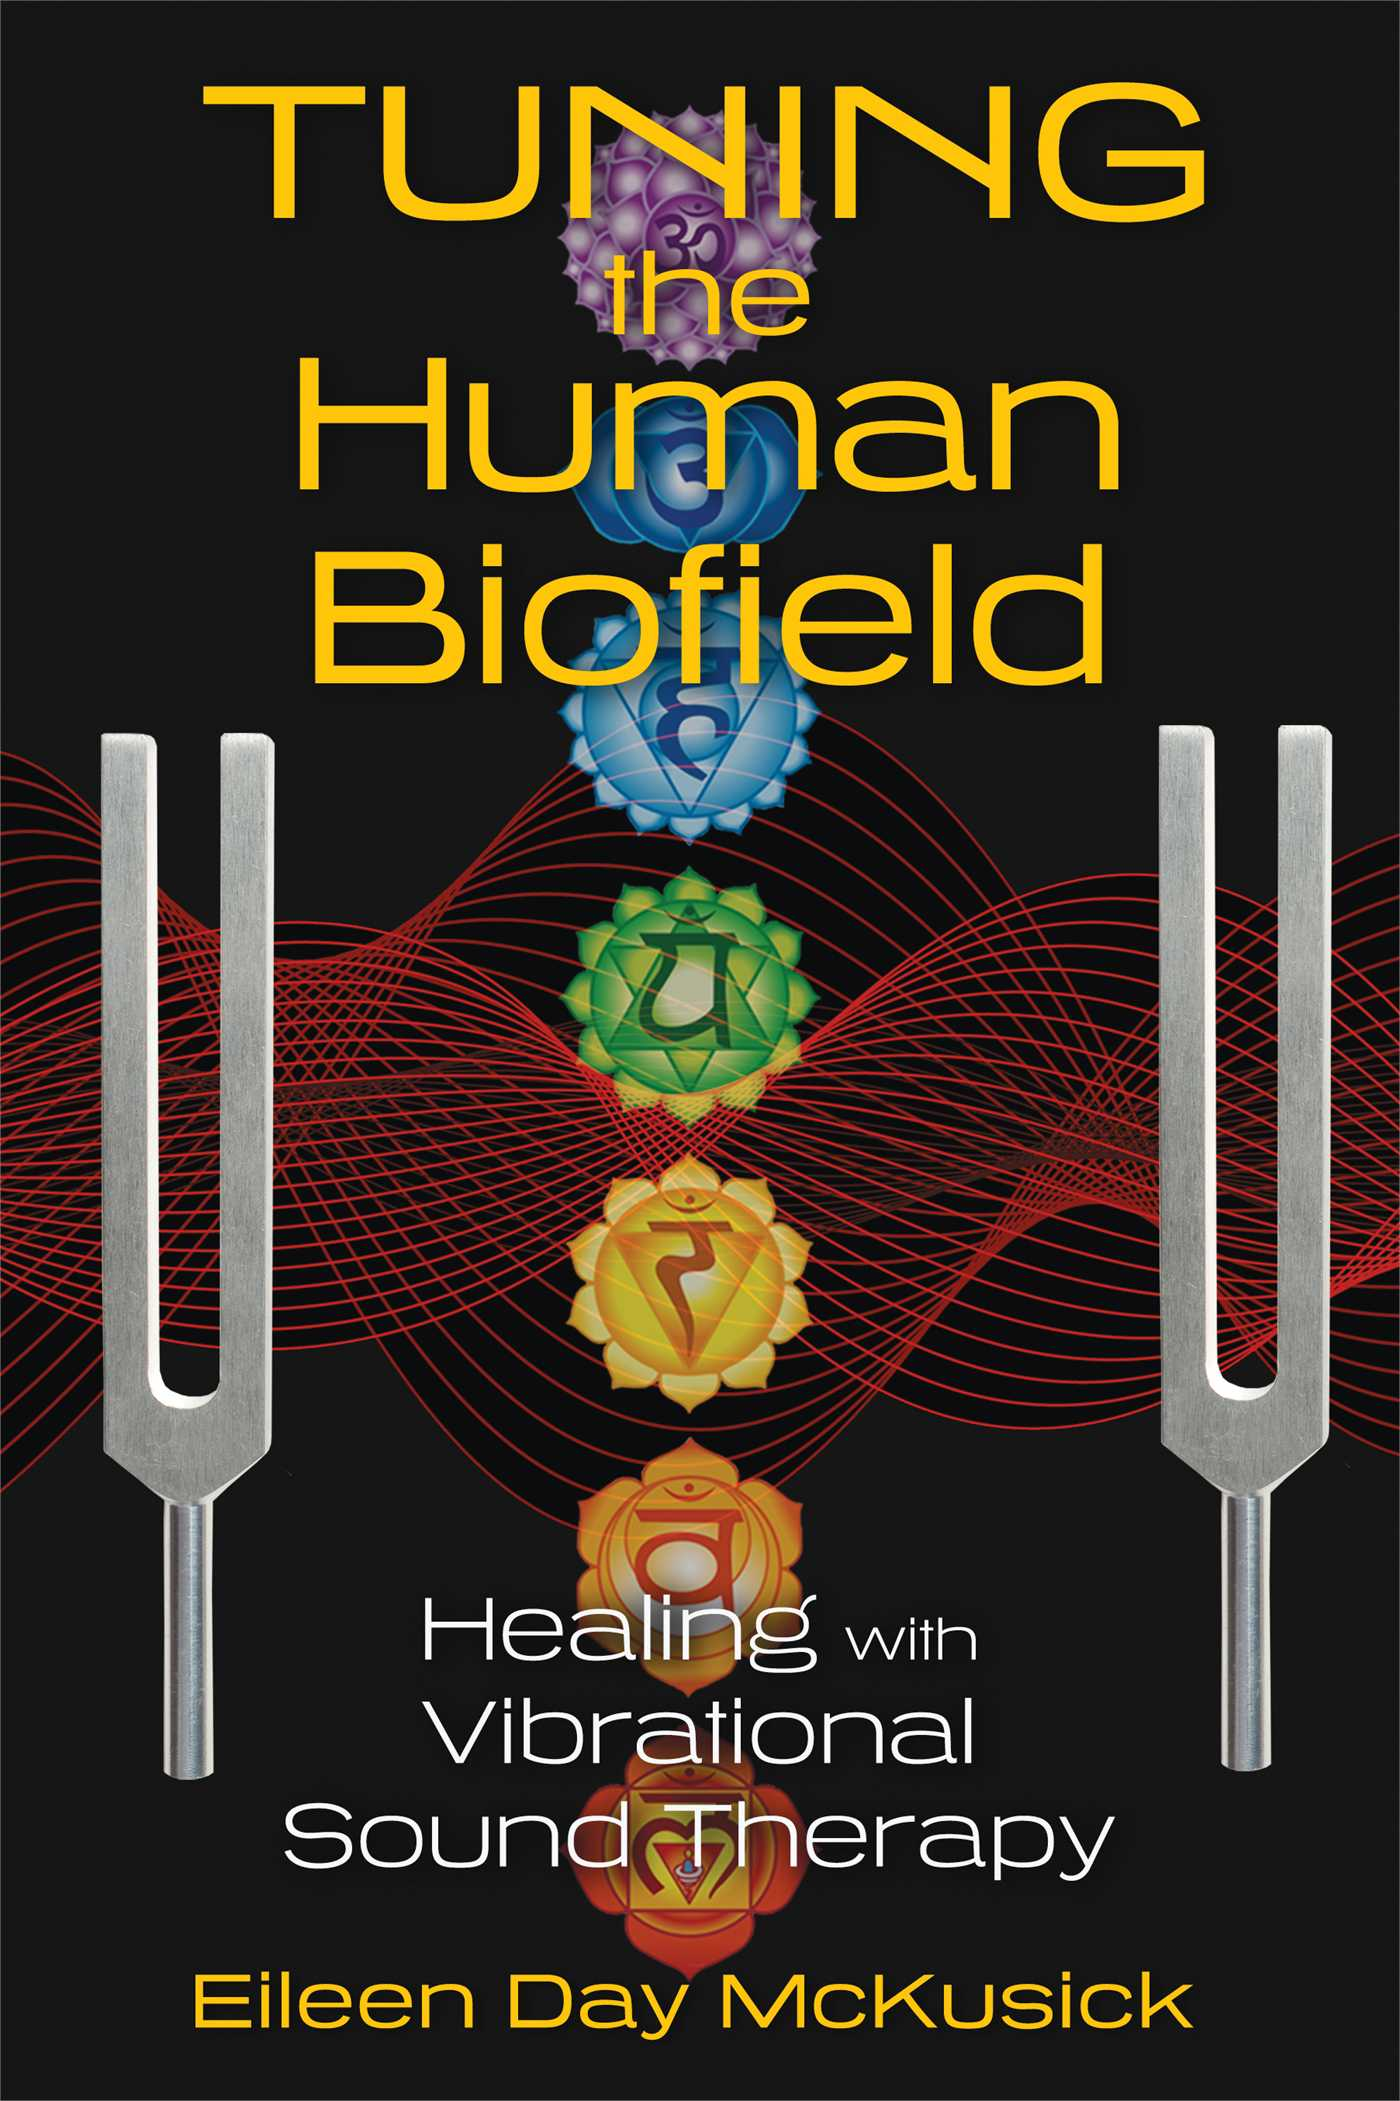 Tuning the Human Biofield  Book by Eileen Day McKusick